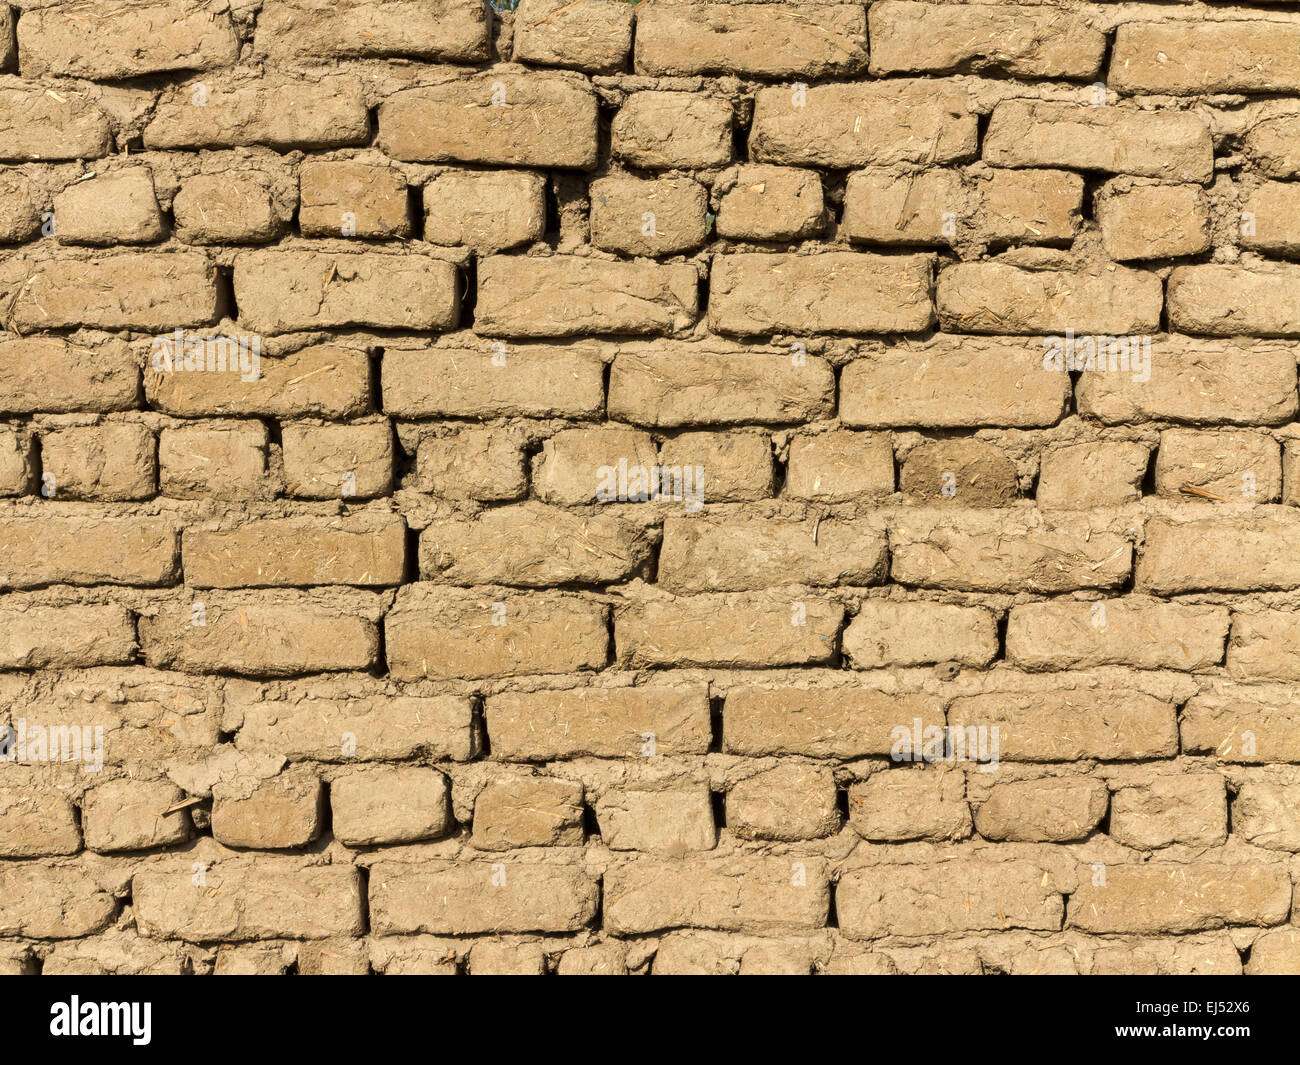 Detail close up of an area of mud brick wall, Egypt Africa - Stock Image